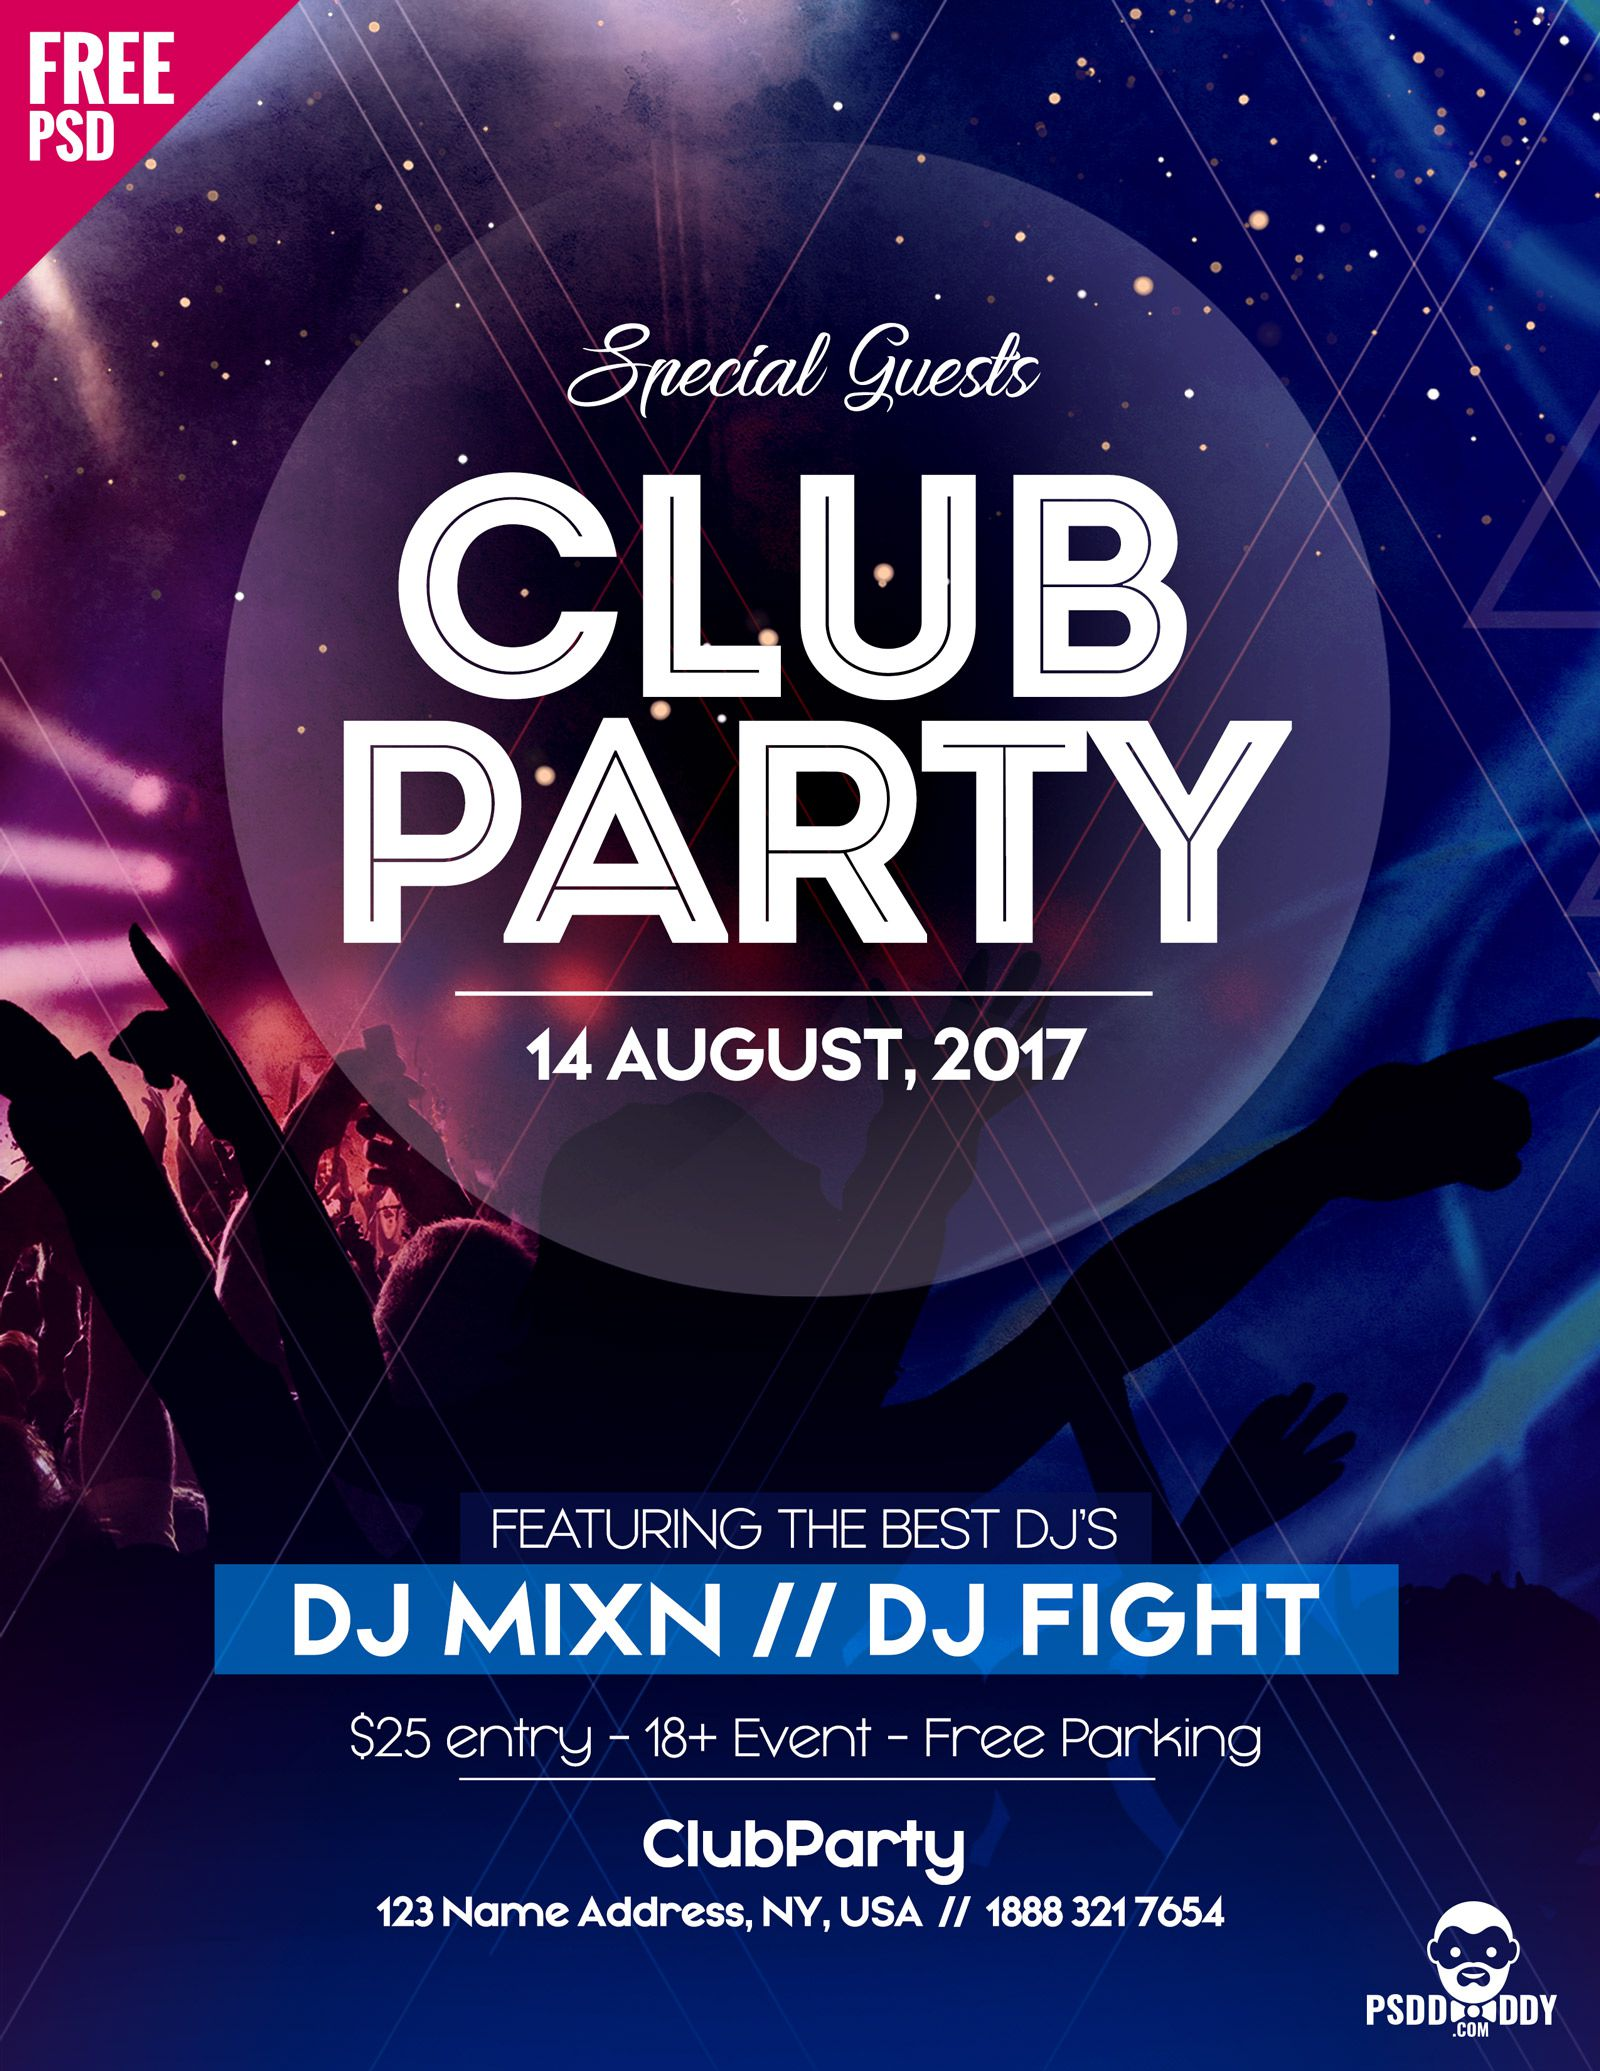 004 Rare Party Event Flyer Template Free Download Picture Full